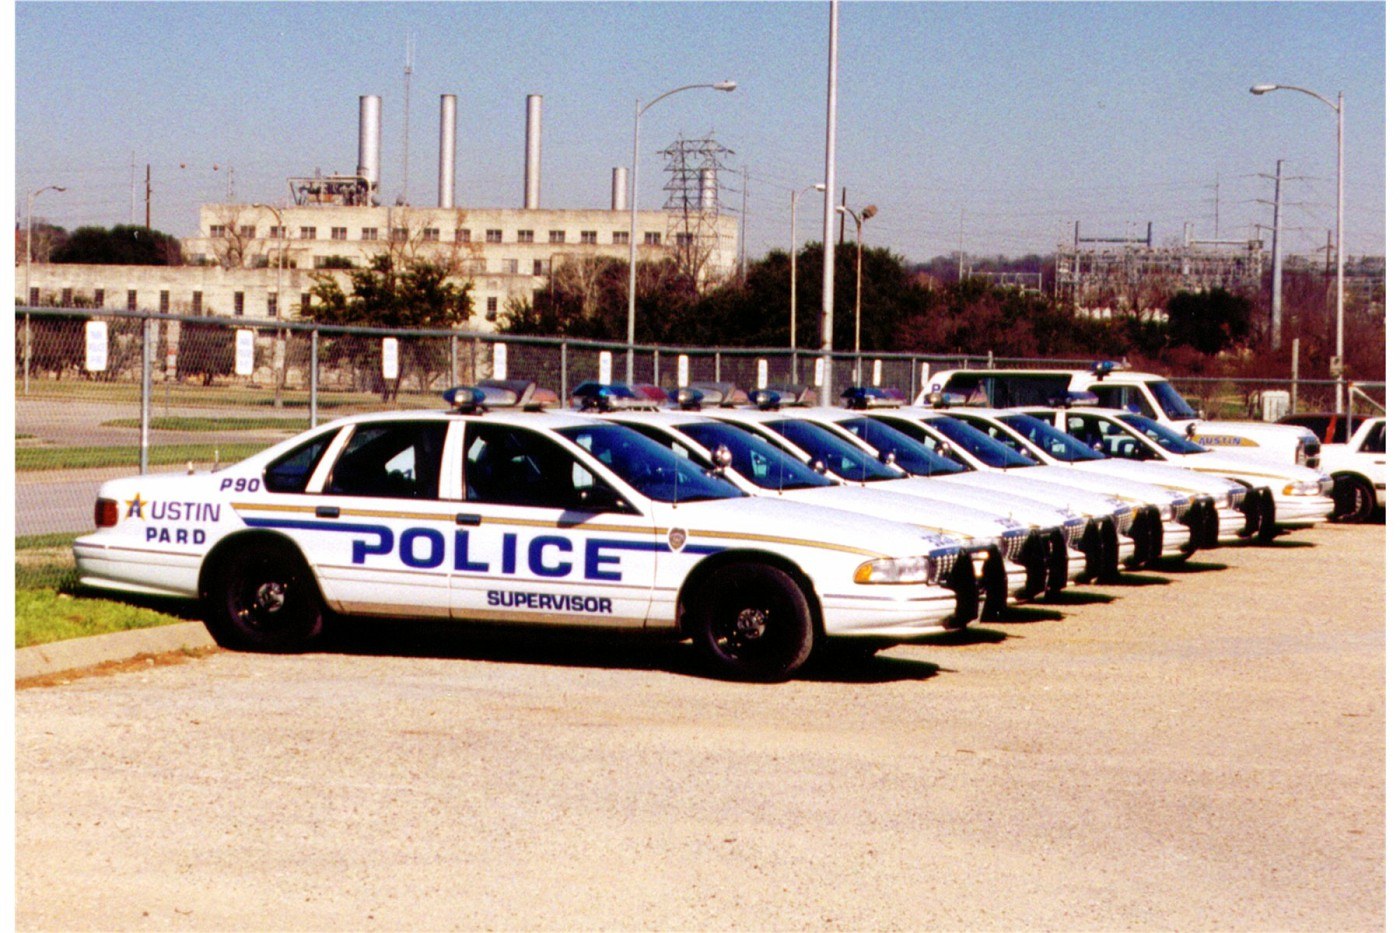 Old Chevy Cars >> copcar dot com - The home of the American Police Car - Photo Archives